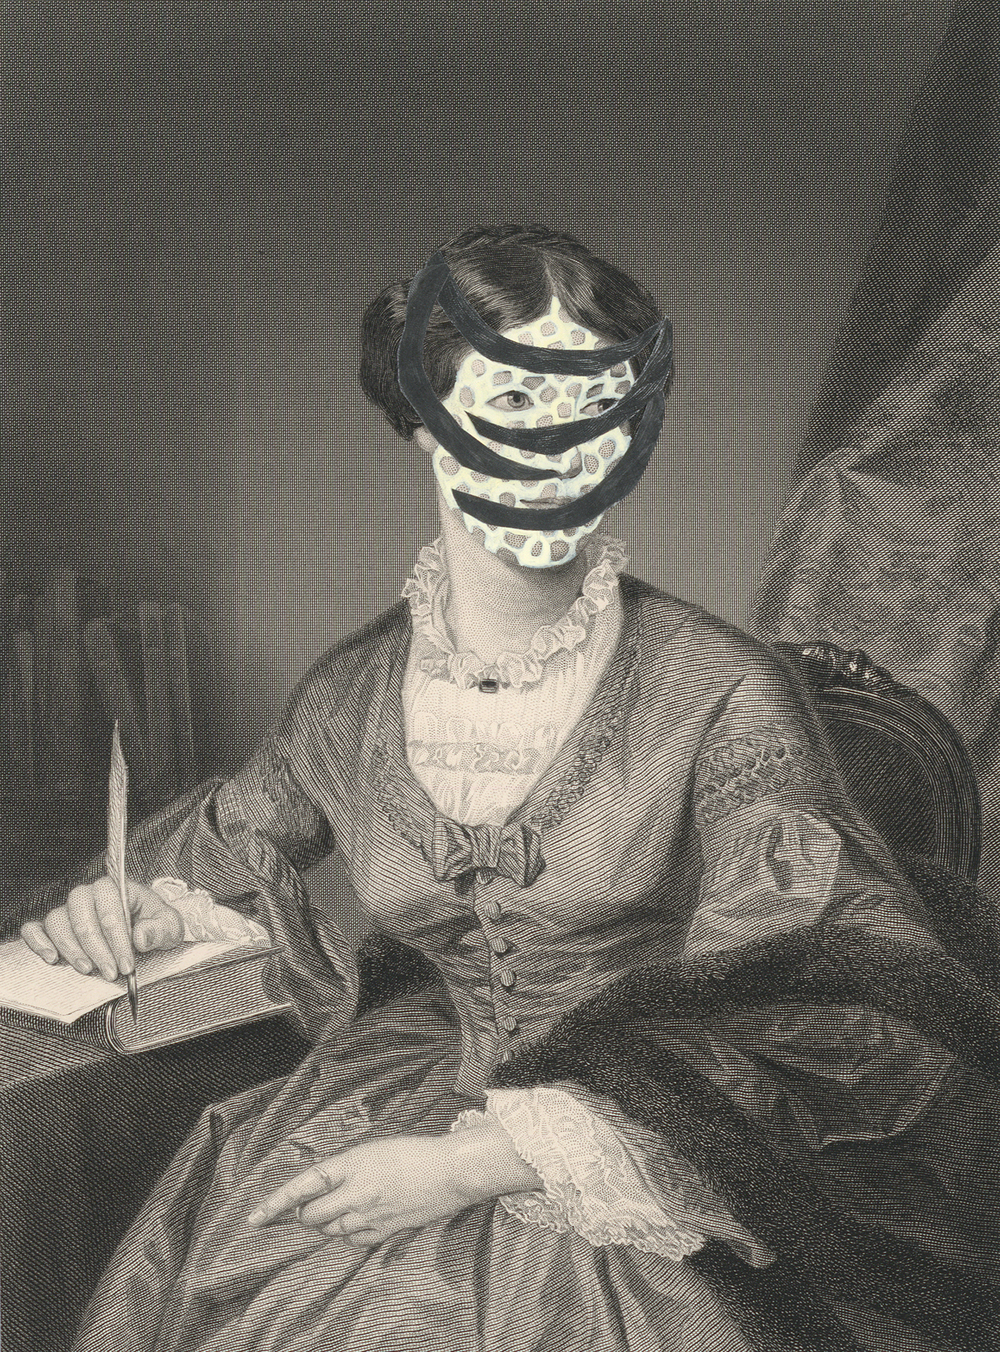 "Mrs. William Hawthorne 1860/2015 , gouache, graphite, collage on 19th century engraving, 7.5"" x 5"", 2015"